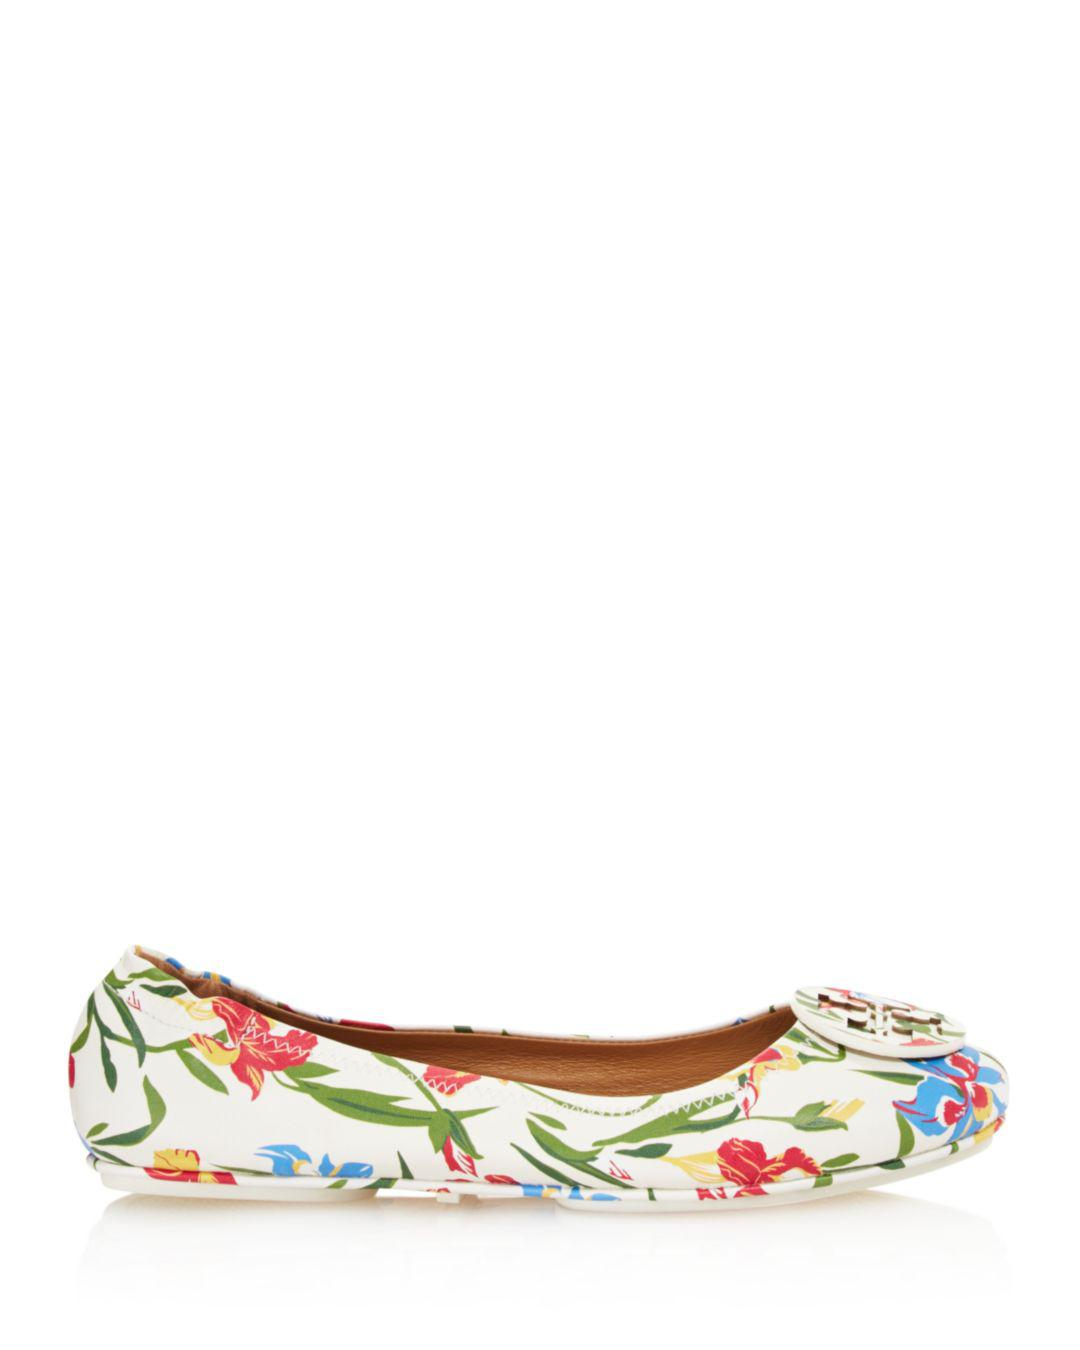 231c074a6d8 Lyst - Tory Burch Women s Minnie Floral Print Leather Travel Ballet ...